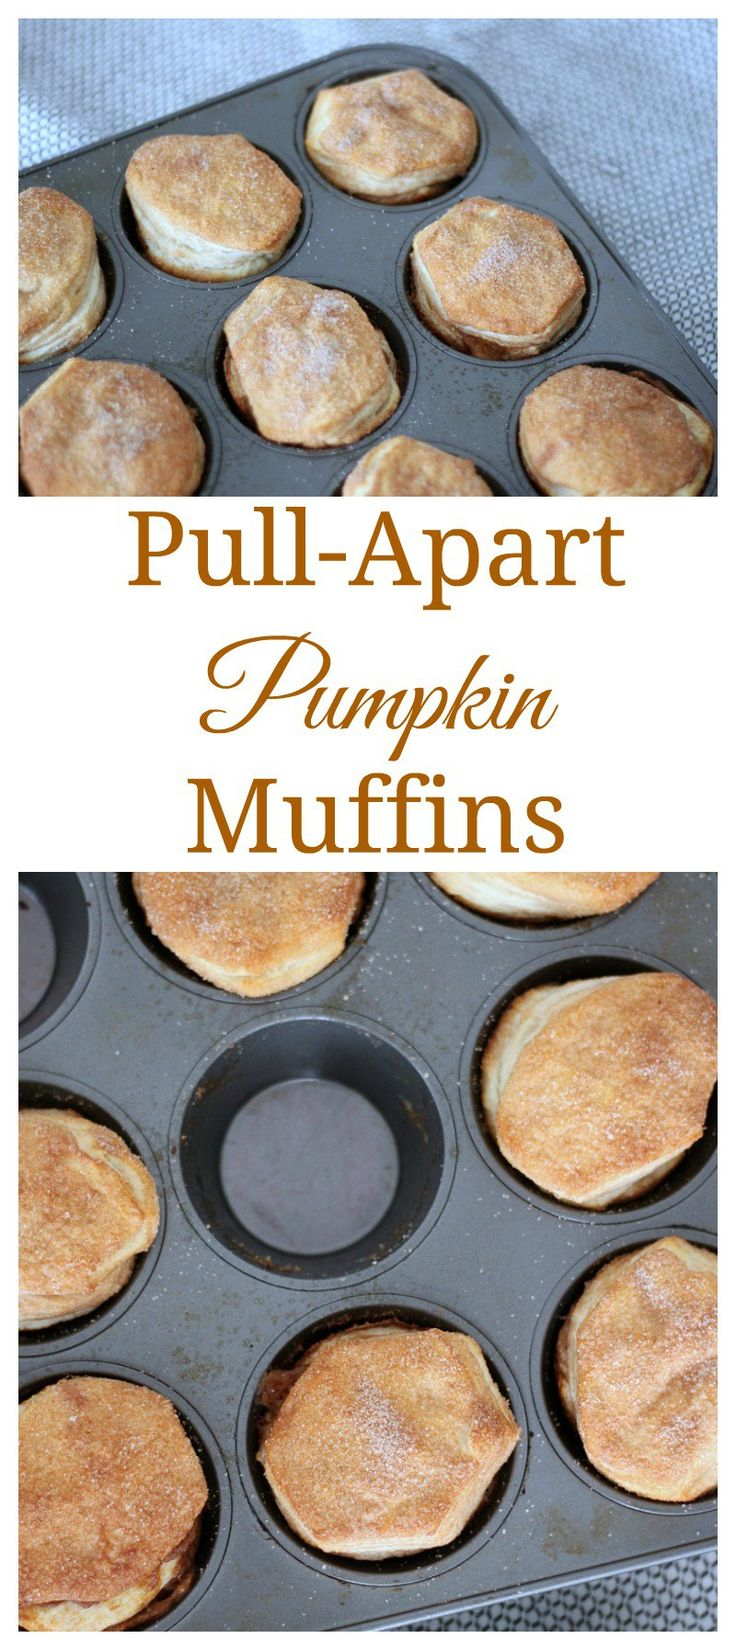 These pull-apart pumpkin muffins are an easy to make holiday treat that requires few ingredients but tastes oh so good. #muffins #pumpkin #immaculatebaking #ad @ImmaculateBakes